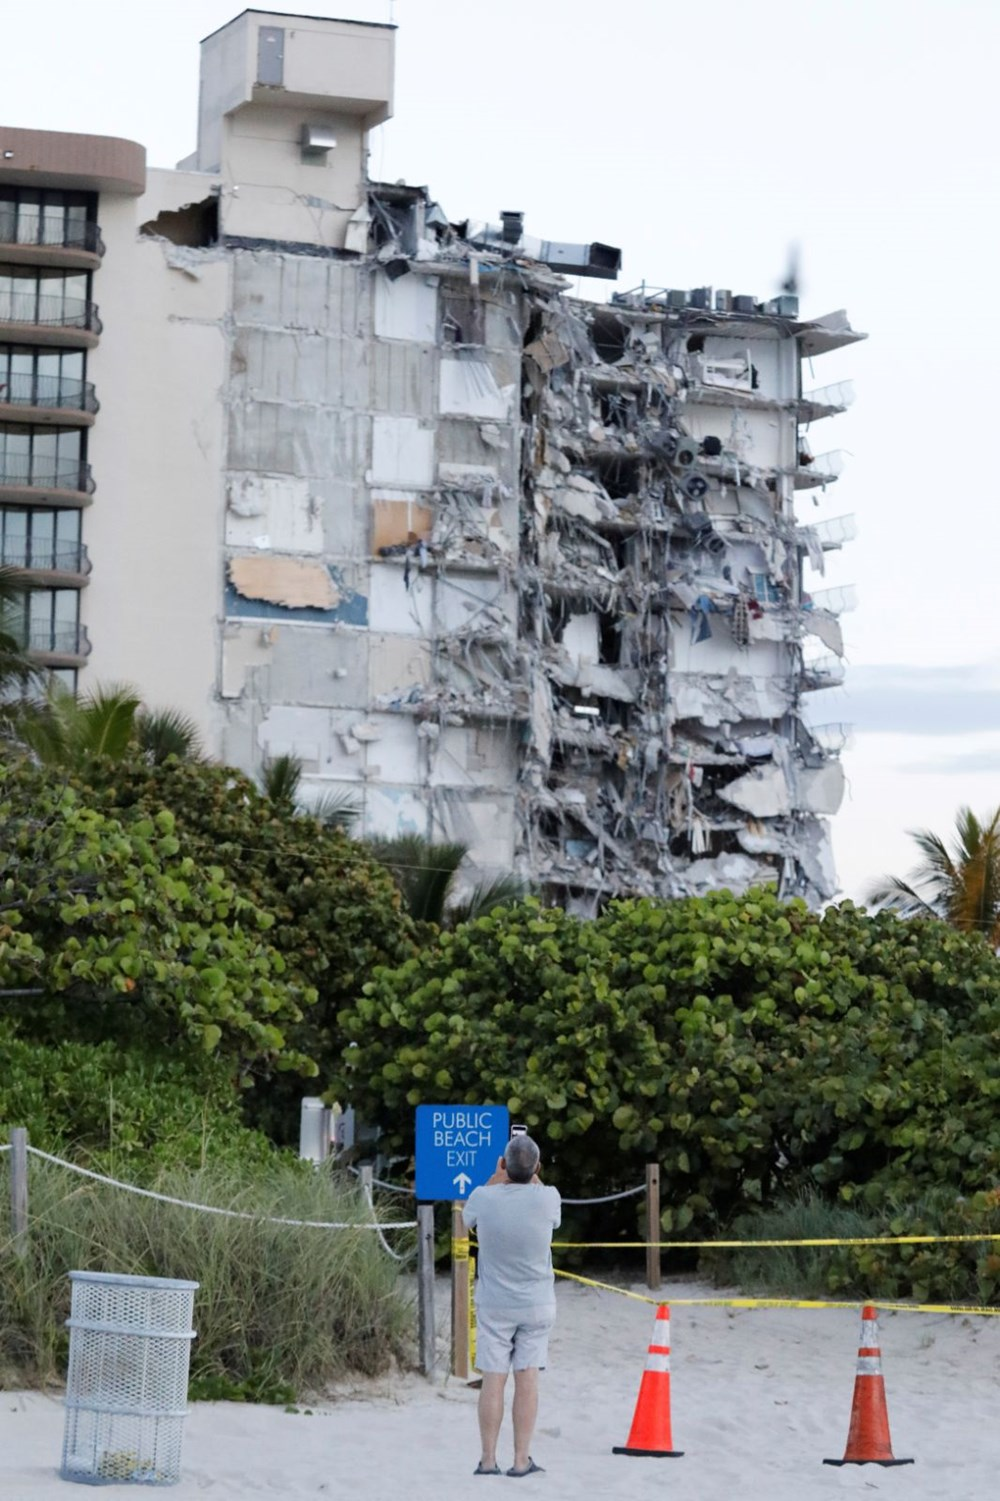 Building collapsed in the USA: Loss of life increased to 4, 159 people missing - 19